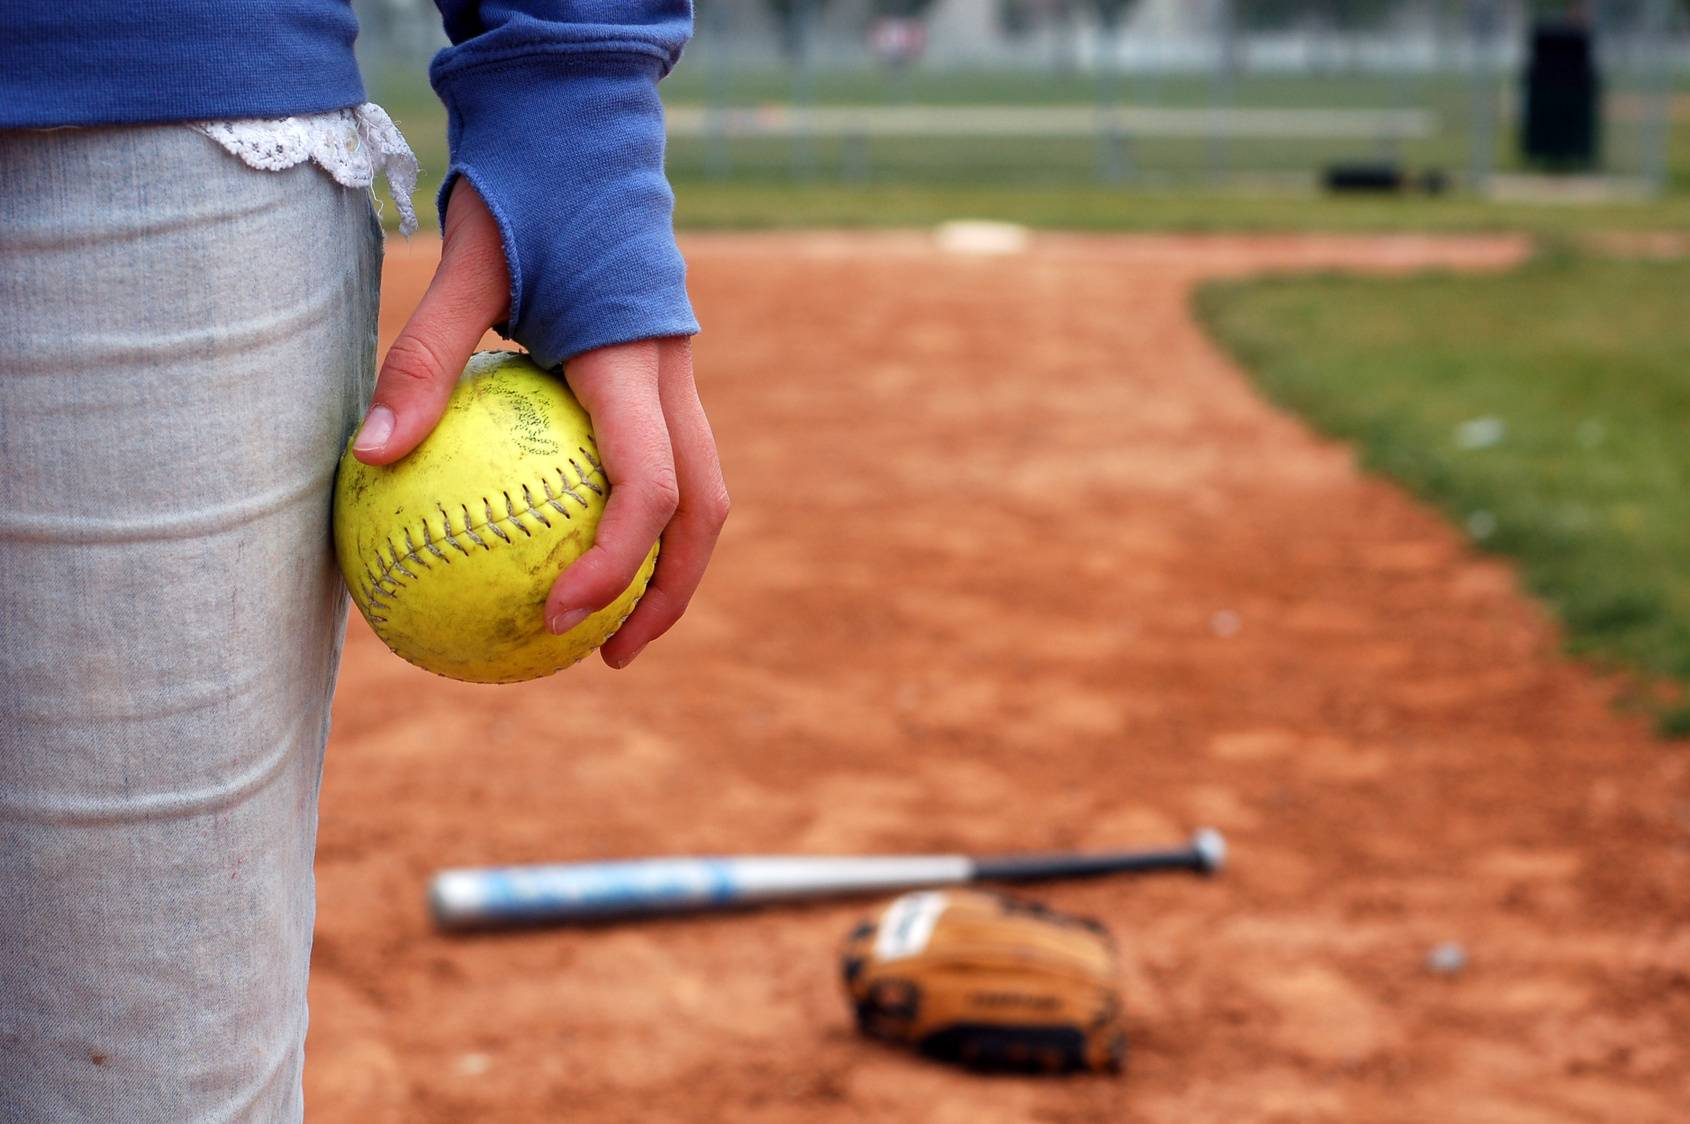 Softball Wallpapers – Softball Backgrounds – download for free